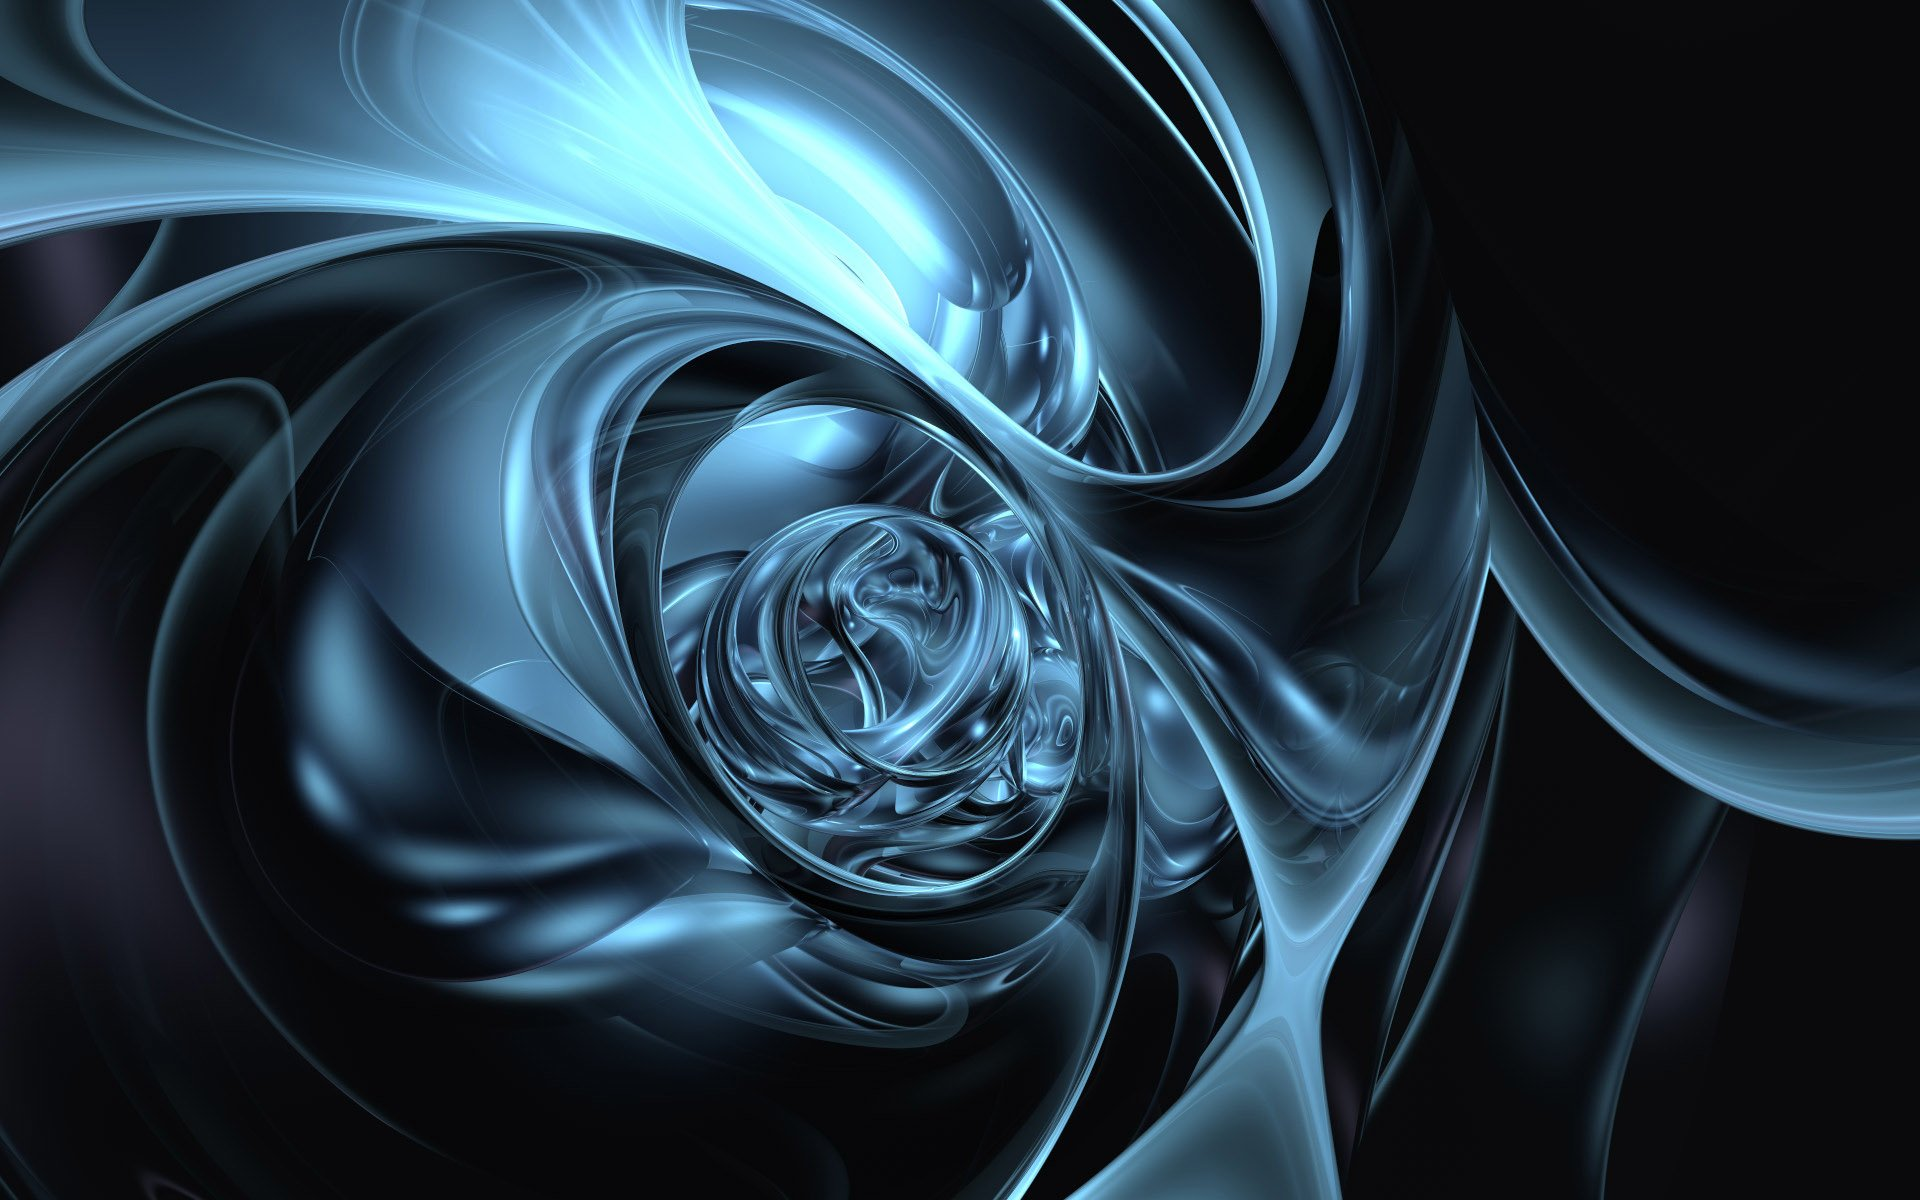 CGI - Abstract  3D Digital CGI Artistic Wallpaper